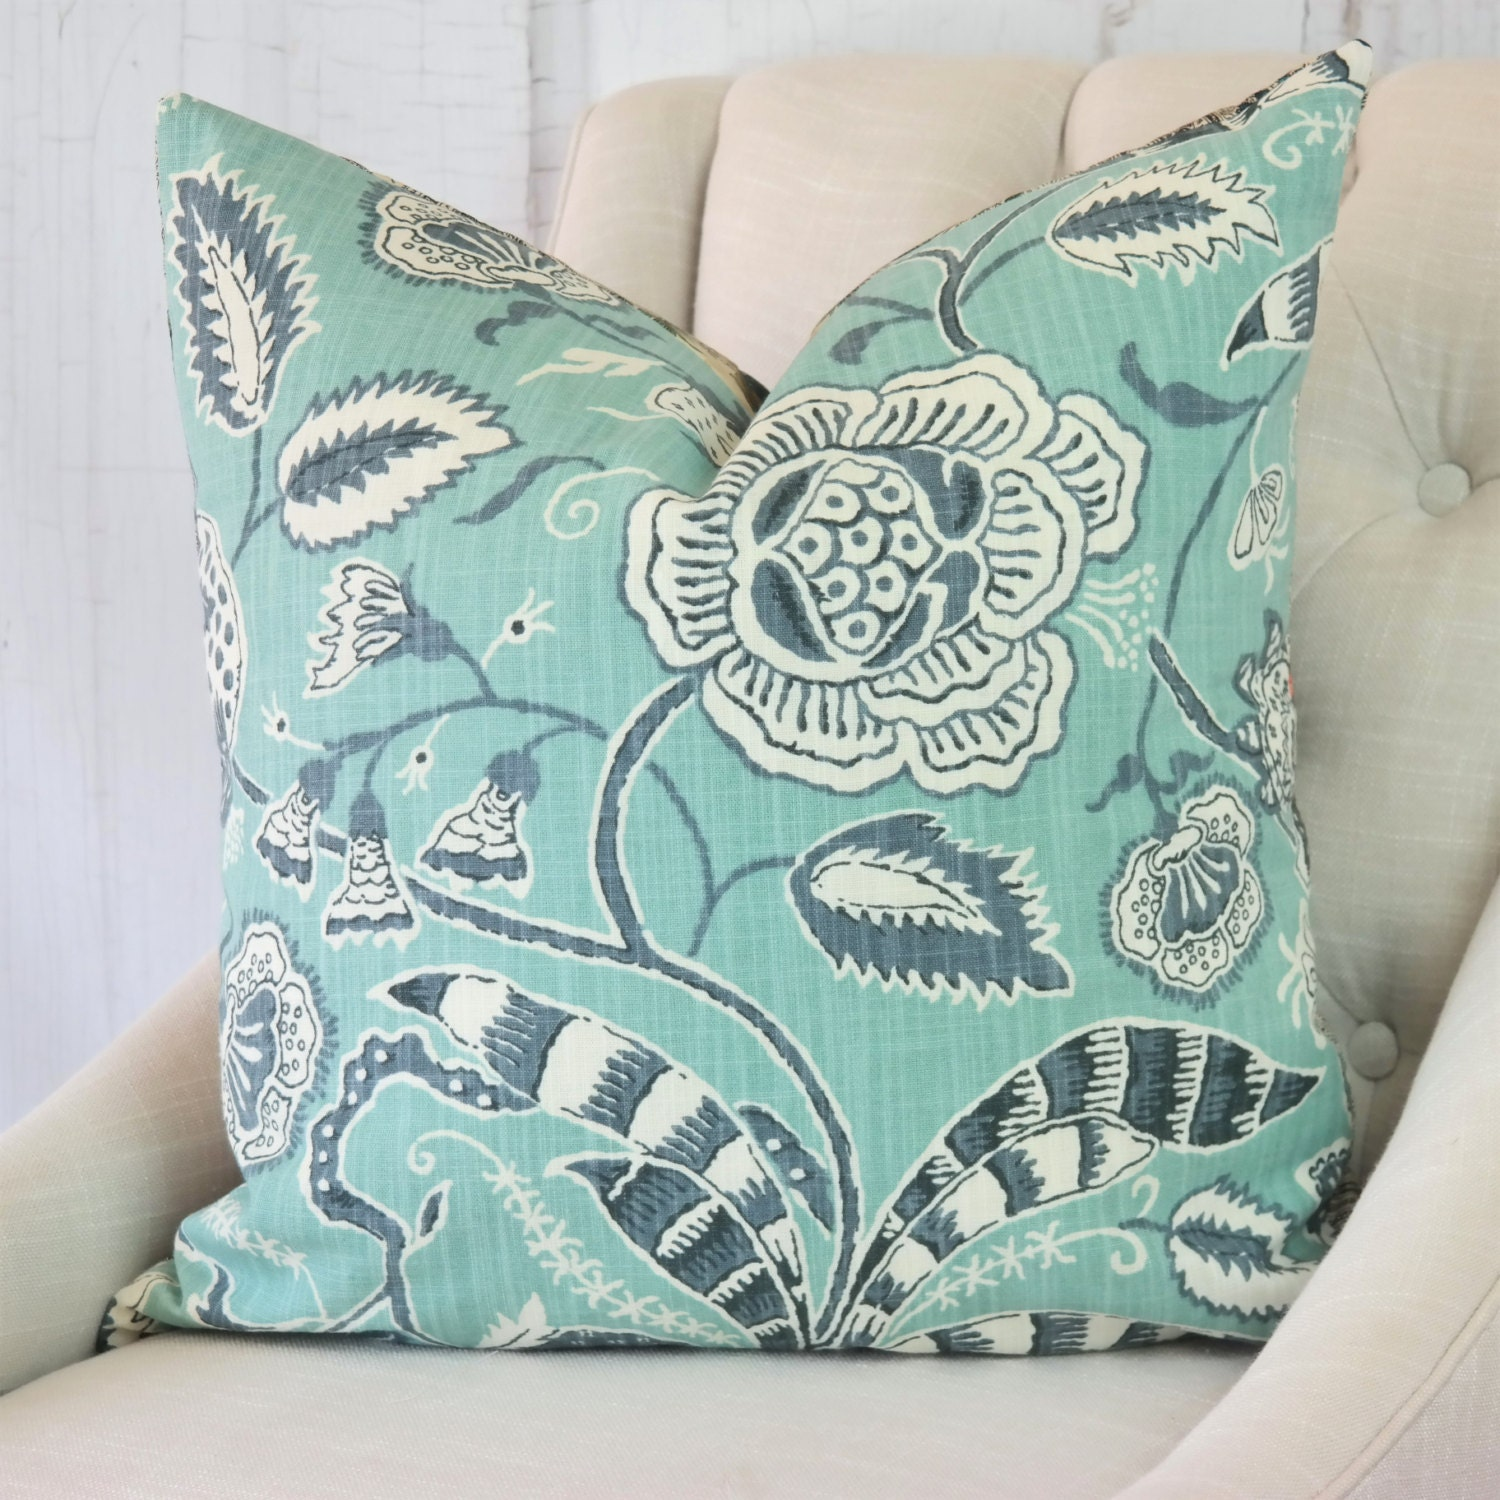 22x22 Throw Pillow Covers : Pillow Covers Teal Throw Pillows 24x24 Pillow Covers 22x22